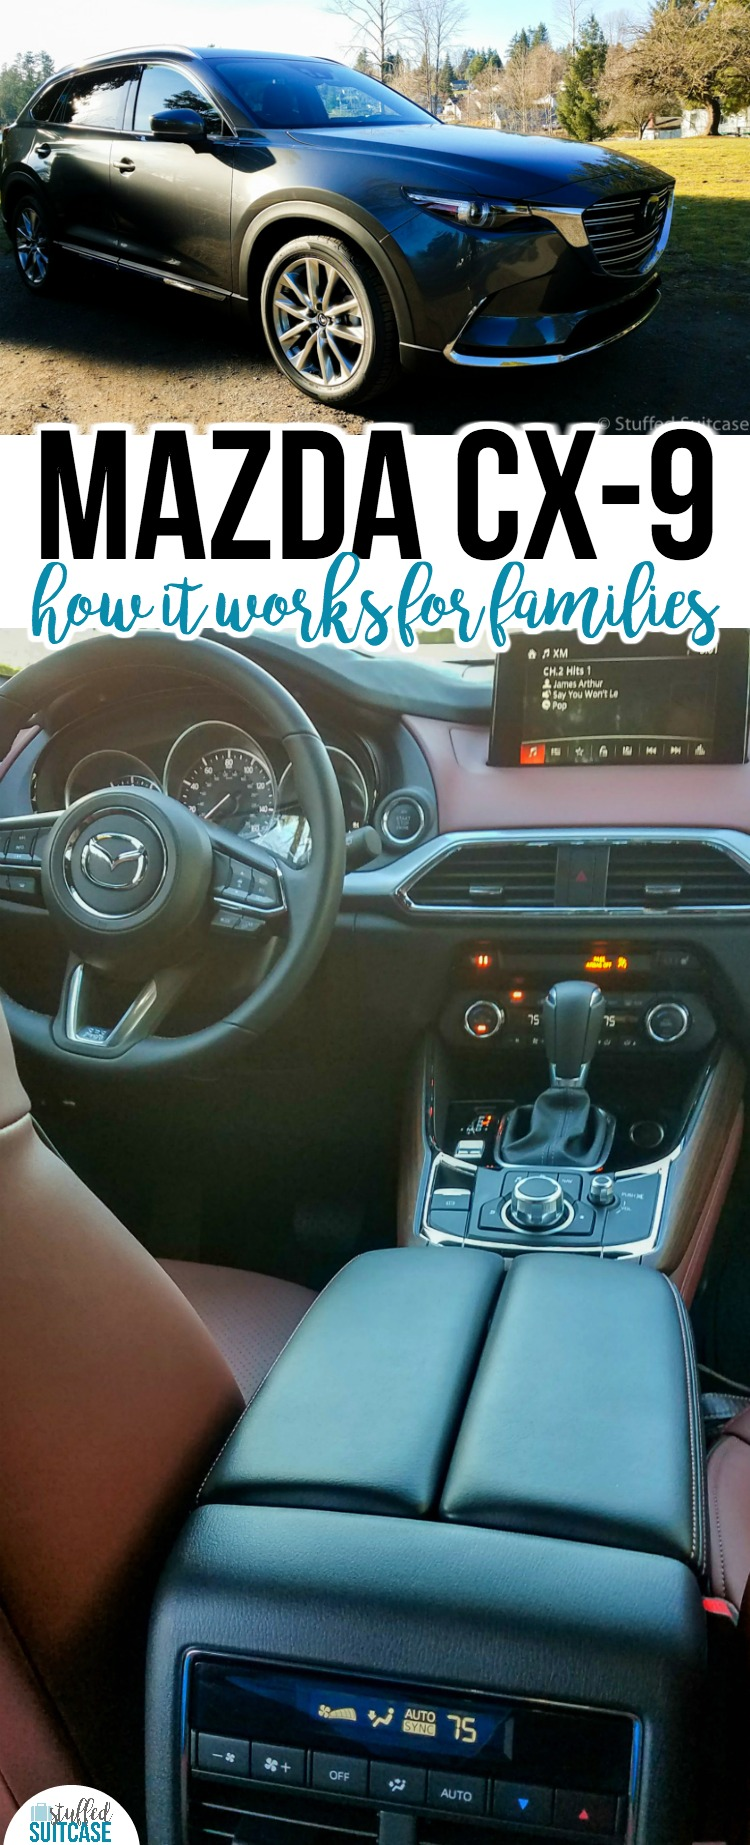 Need a new family car? The Mazda CX-9 looks great & has lots of features great for busy families! Car review   family vehicles   cars for families